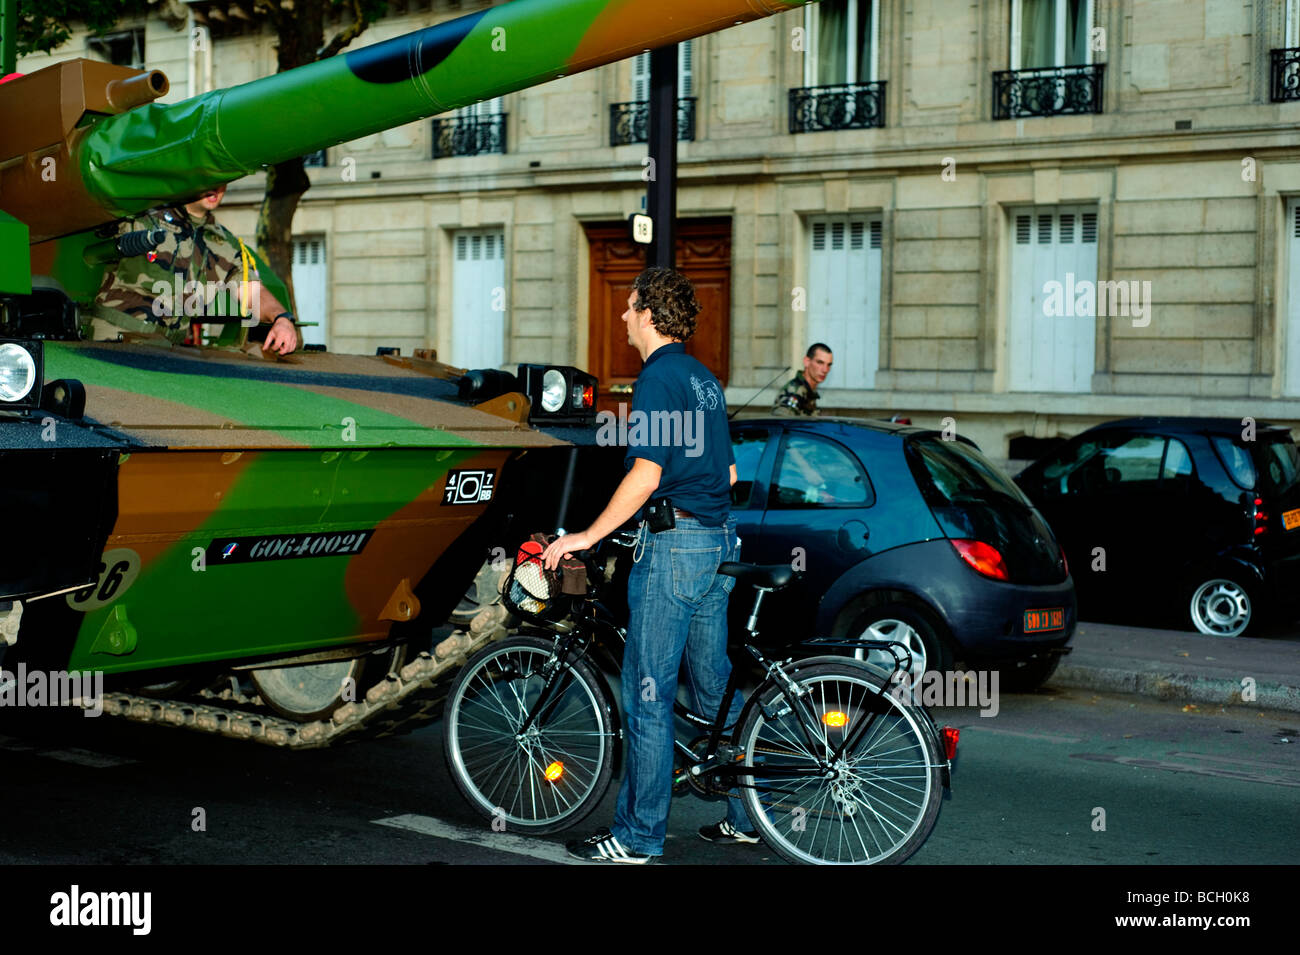 Paris France, Public  Events 'Bastille Day' Celebration '14th of July' Military Parade, French Army - Stock Image